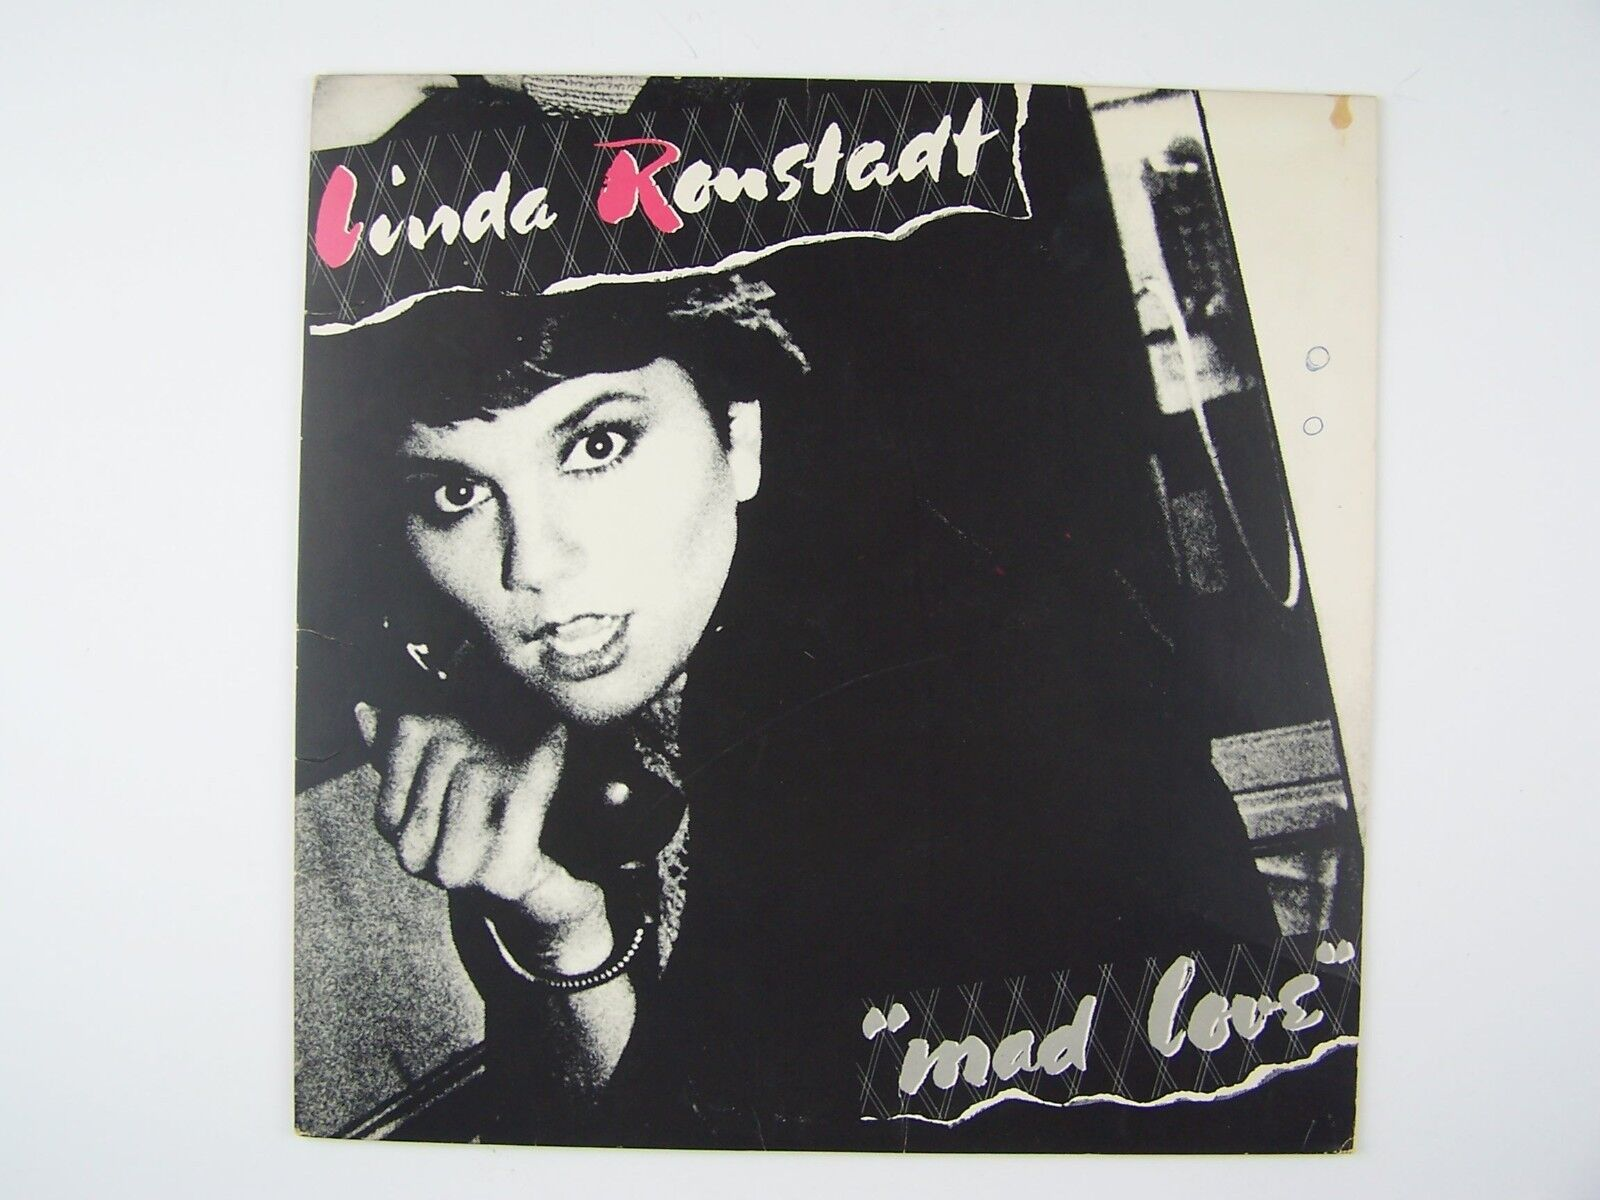 Linda Ronstadt - Mad Love Vinyl LP Record Album 5E-510